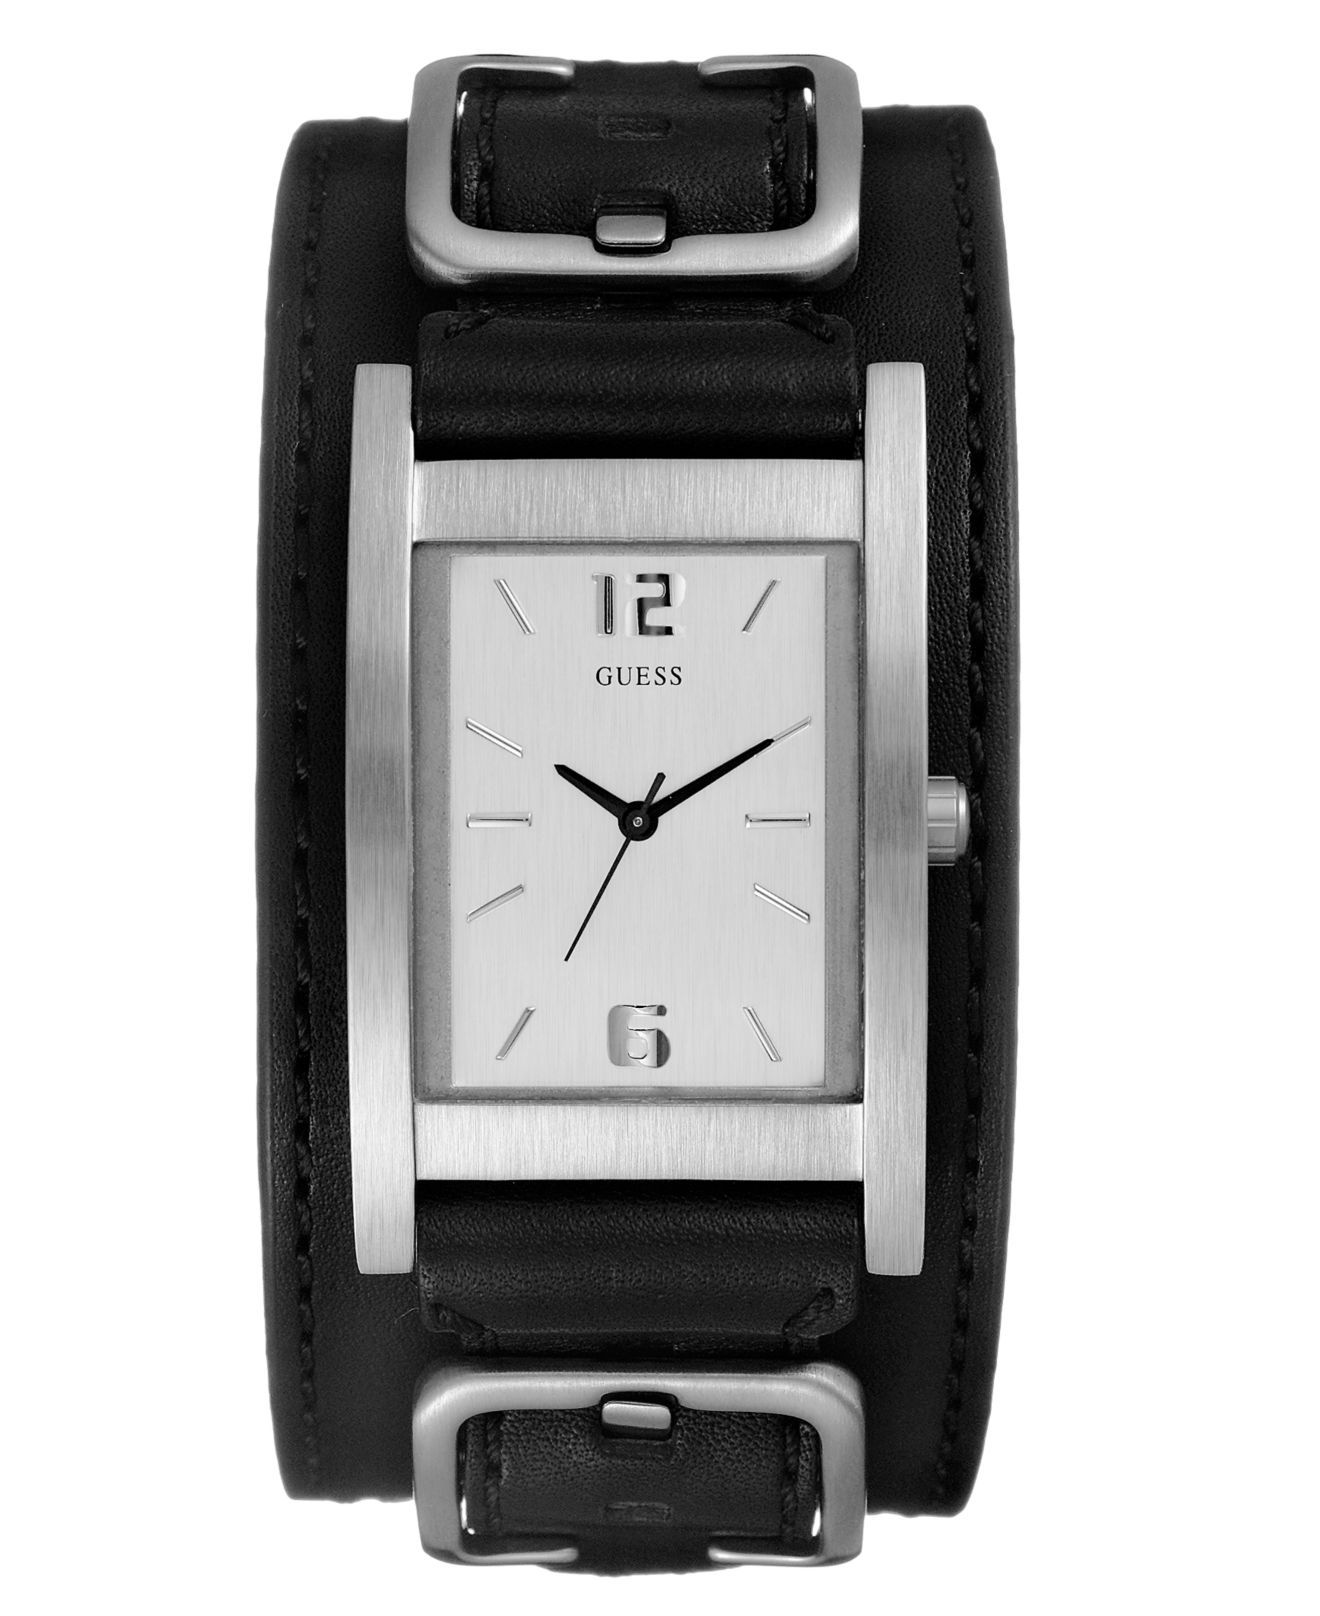 Guess Watch, Men's Black Leather Cuff Bracelet Macy's